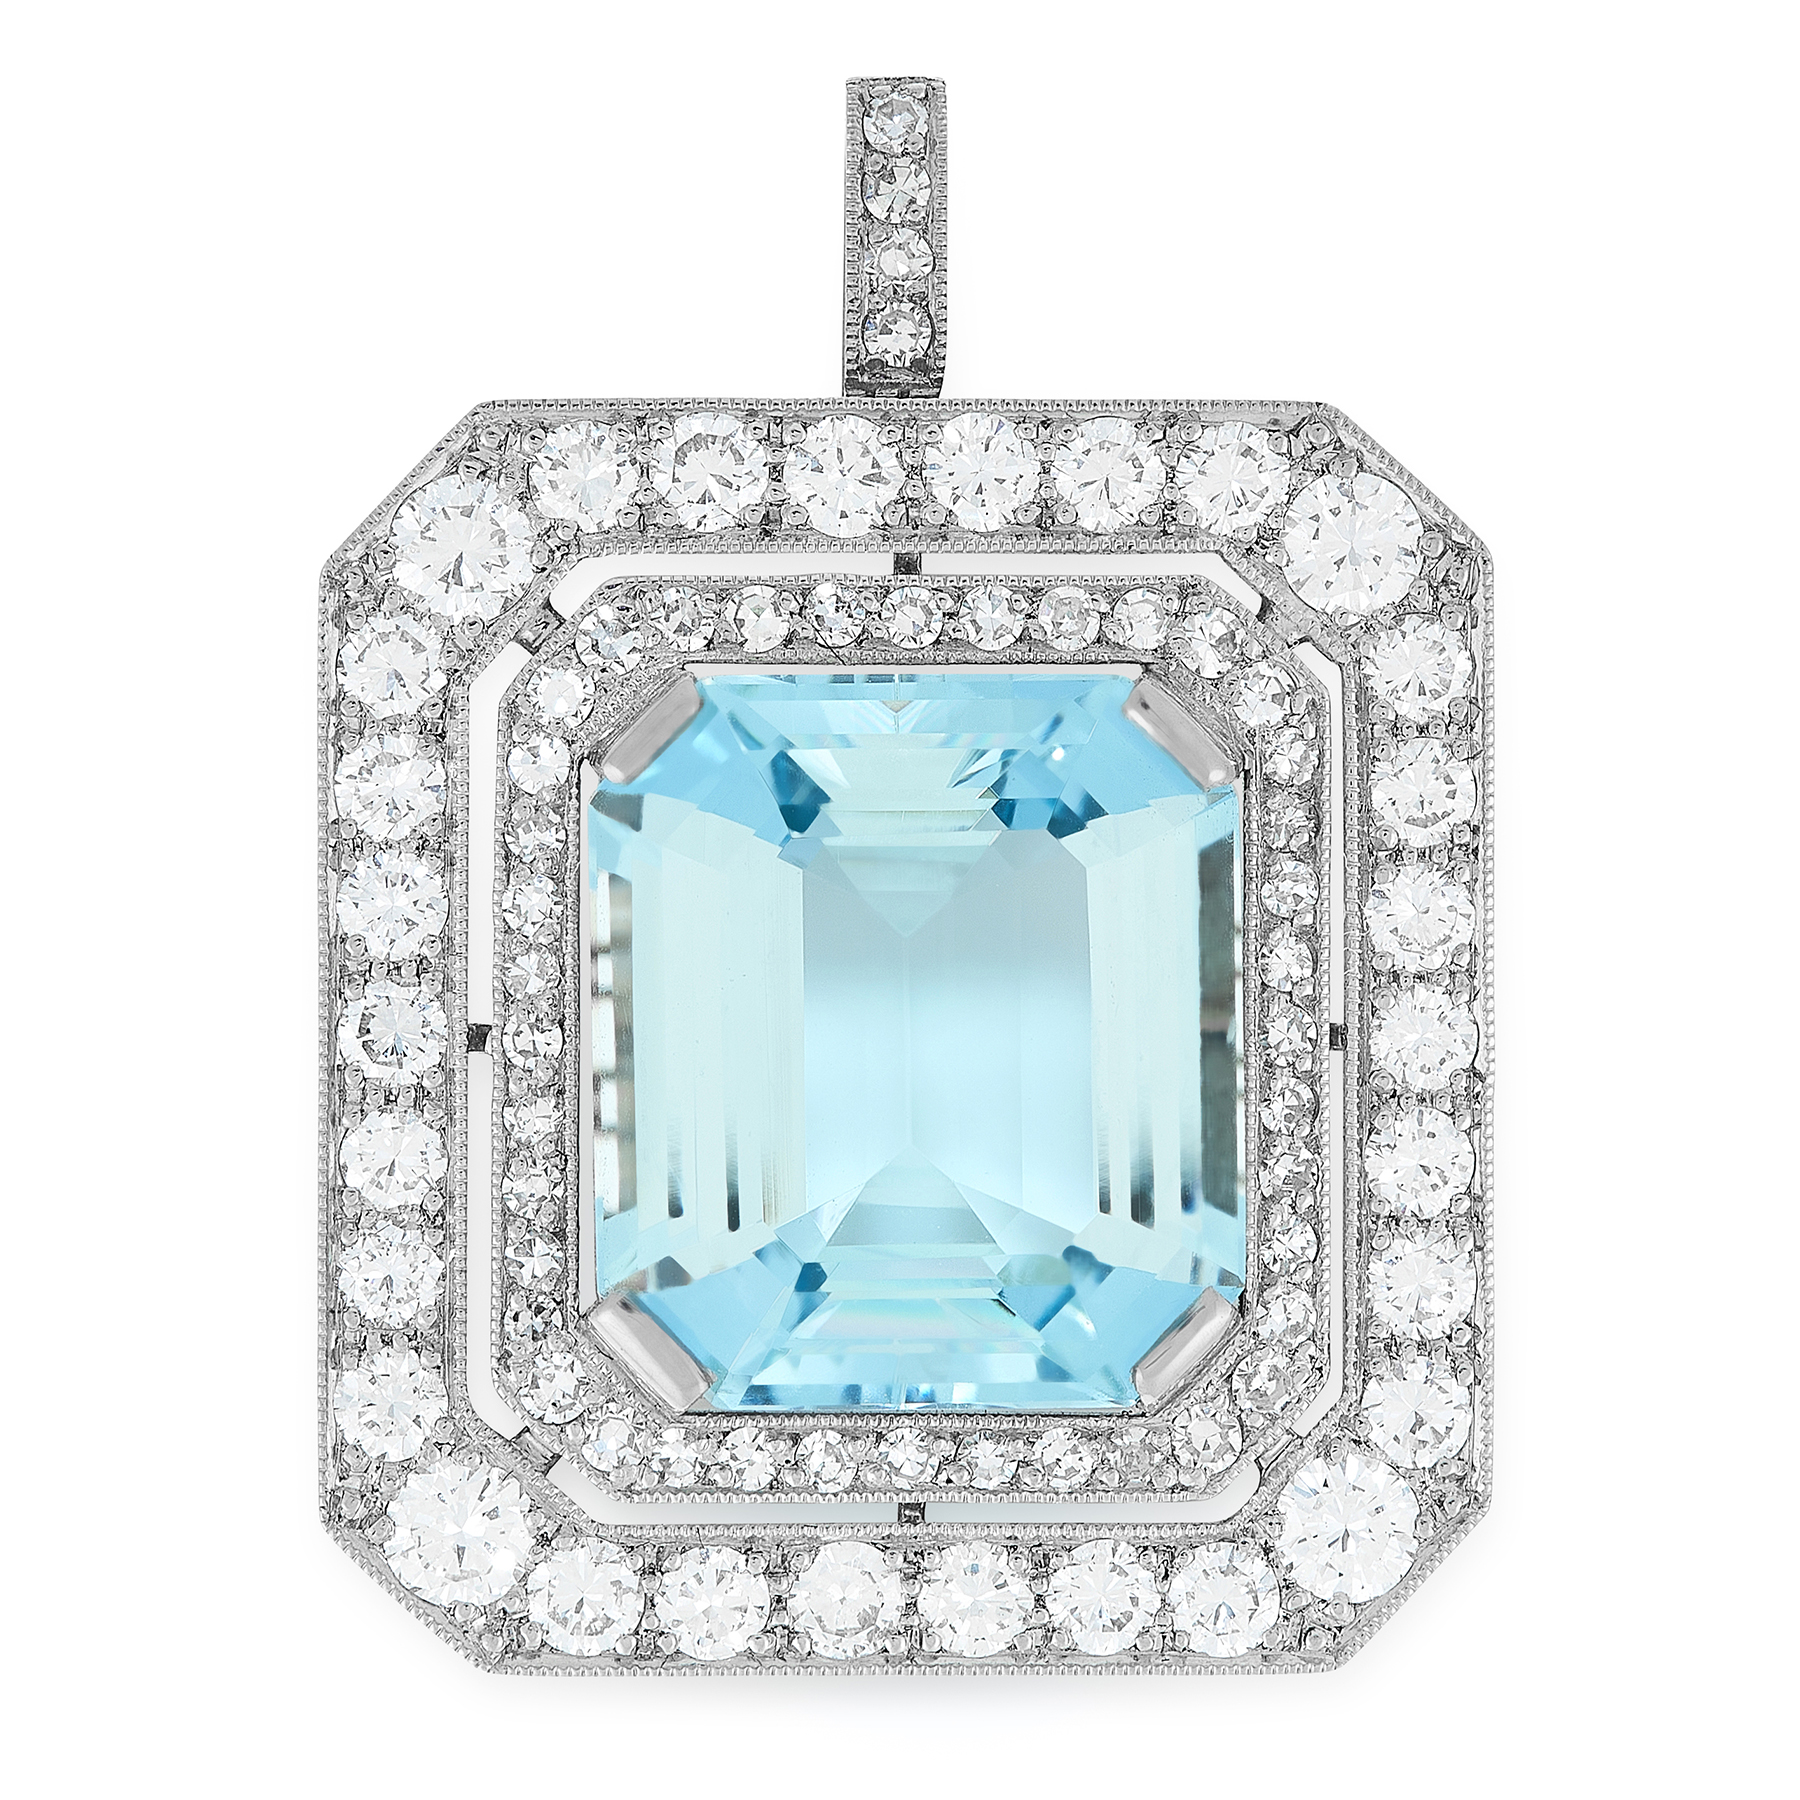 AN AQUAMARINE AND DIAMOND PENDANT set with an emerald cut aquamarine of 10.92 carats, within a two